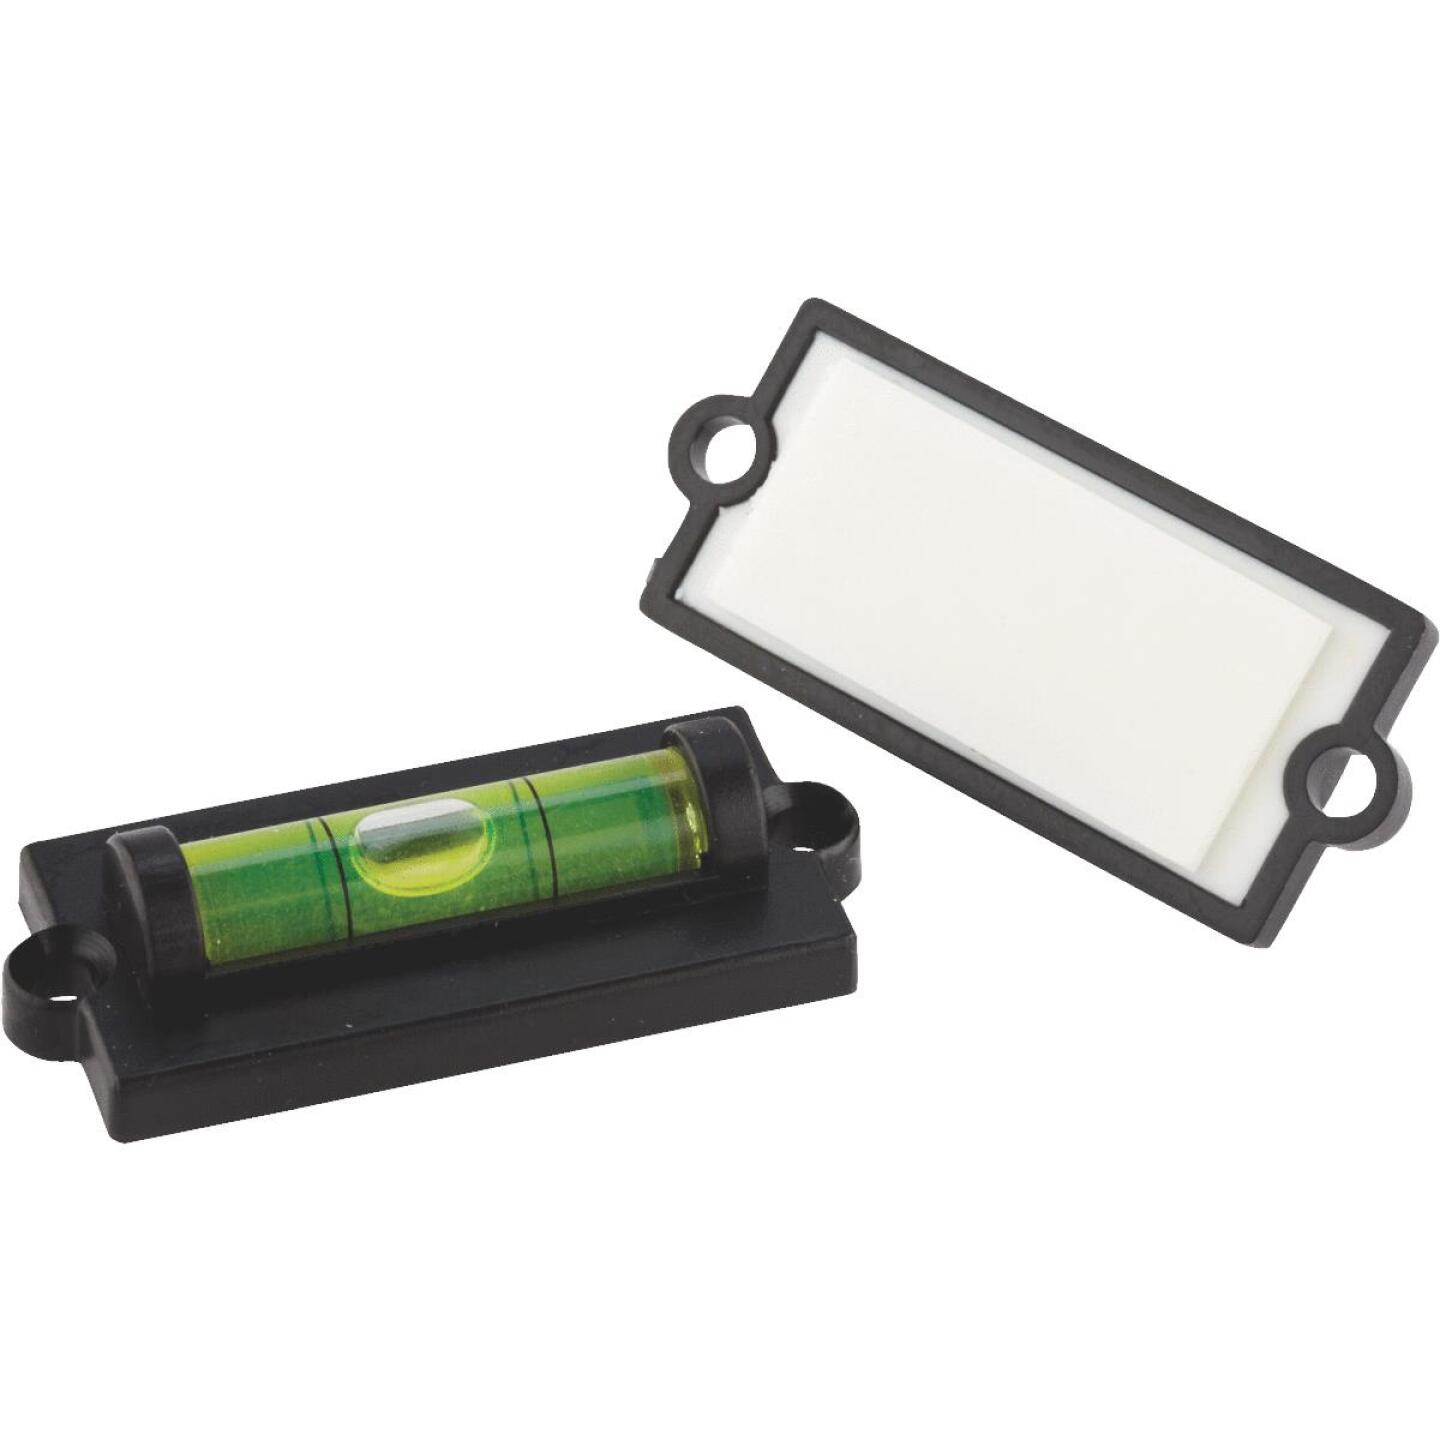 Camco Standard RV Level, (2-Pack) Image 2